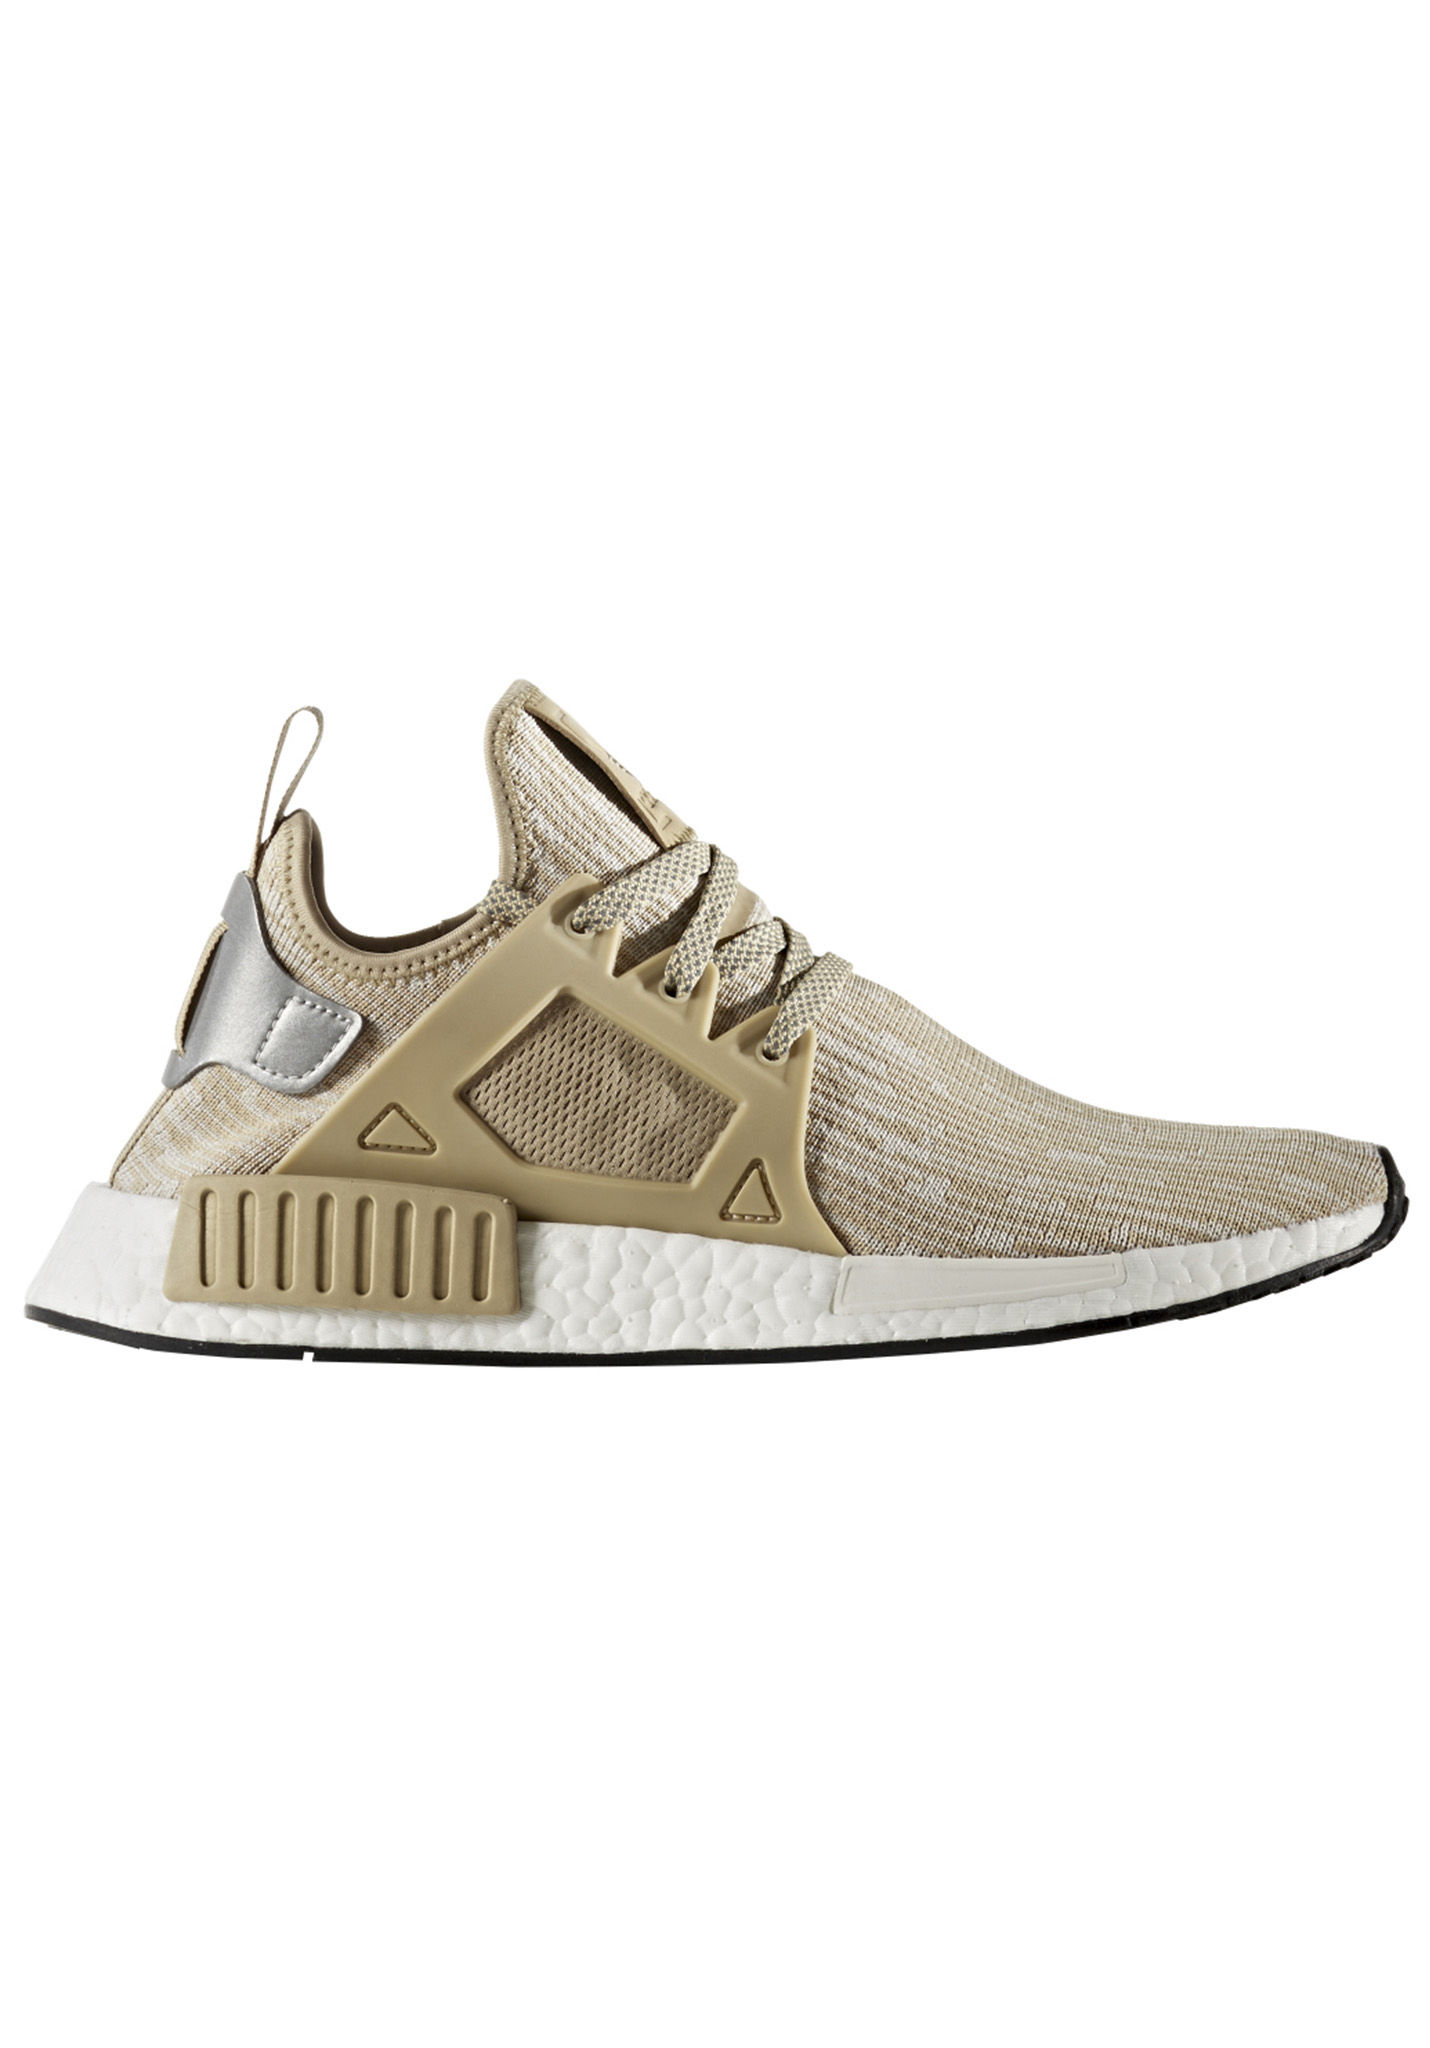 Http: / SneakersCartel Three adidas NMD XR1 Colorways are a